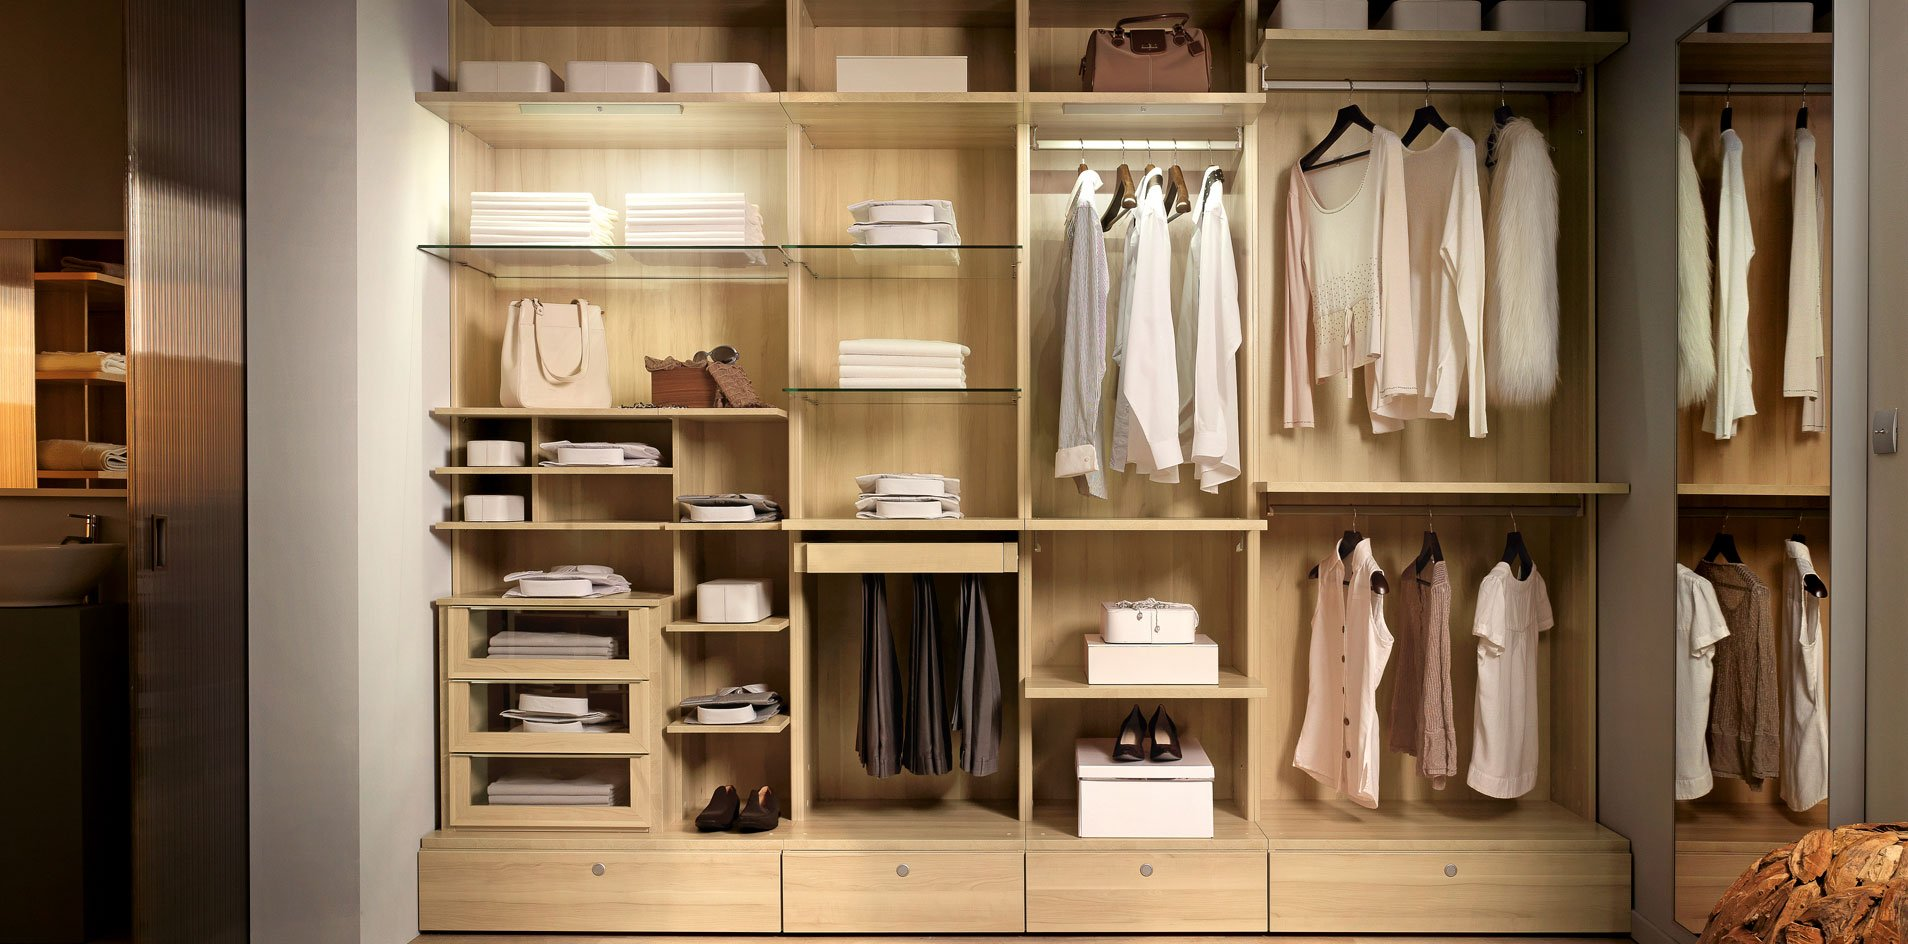 Le dressing for Plan de dressing chambre